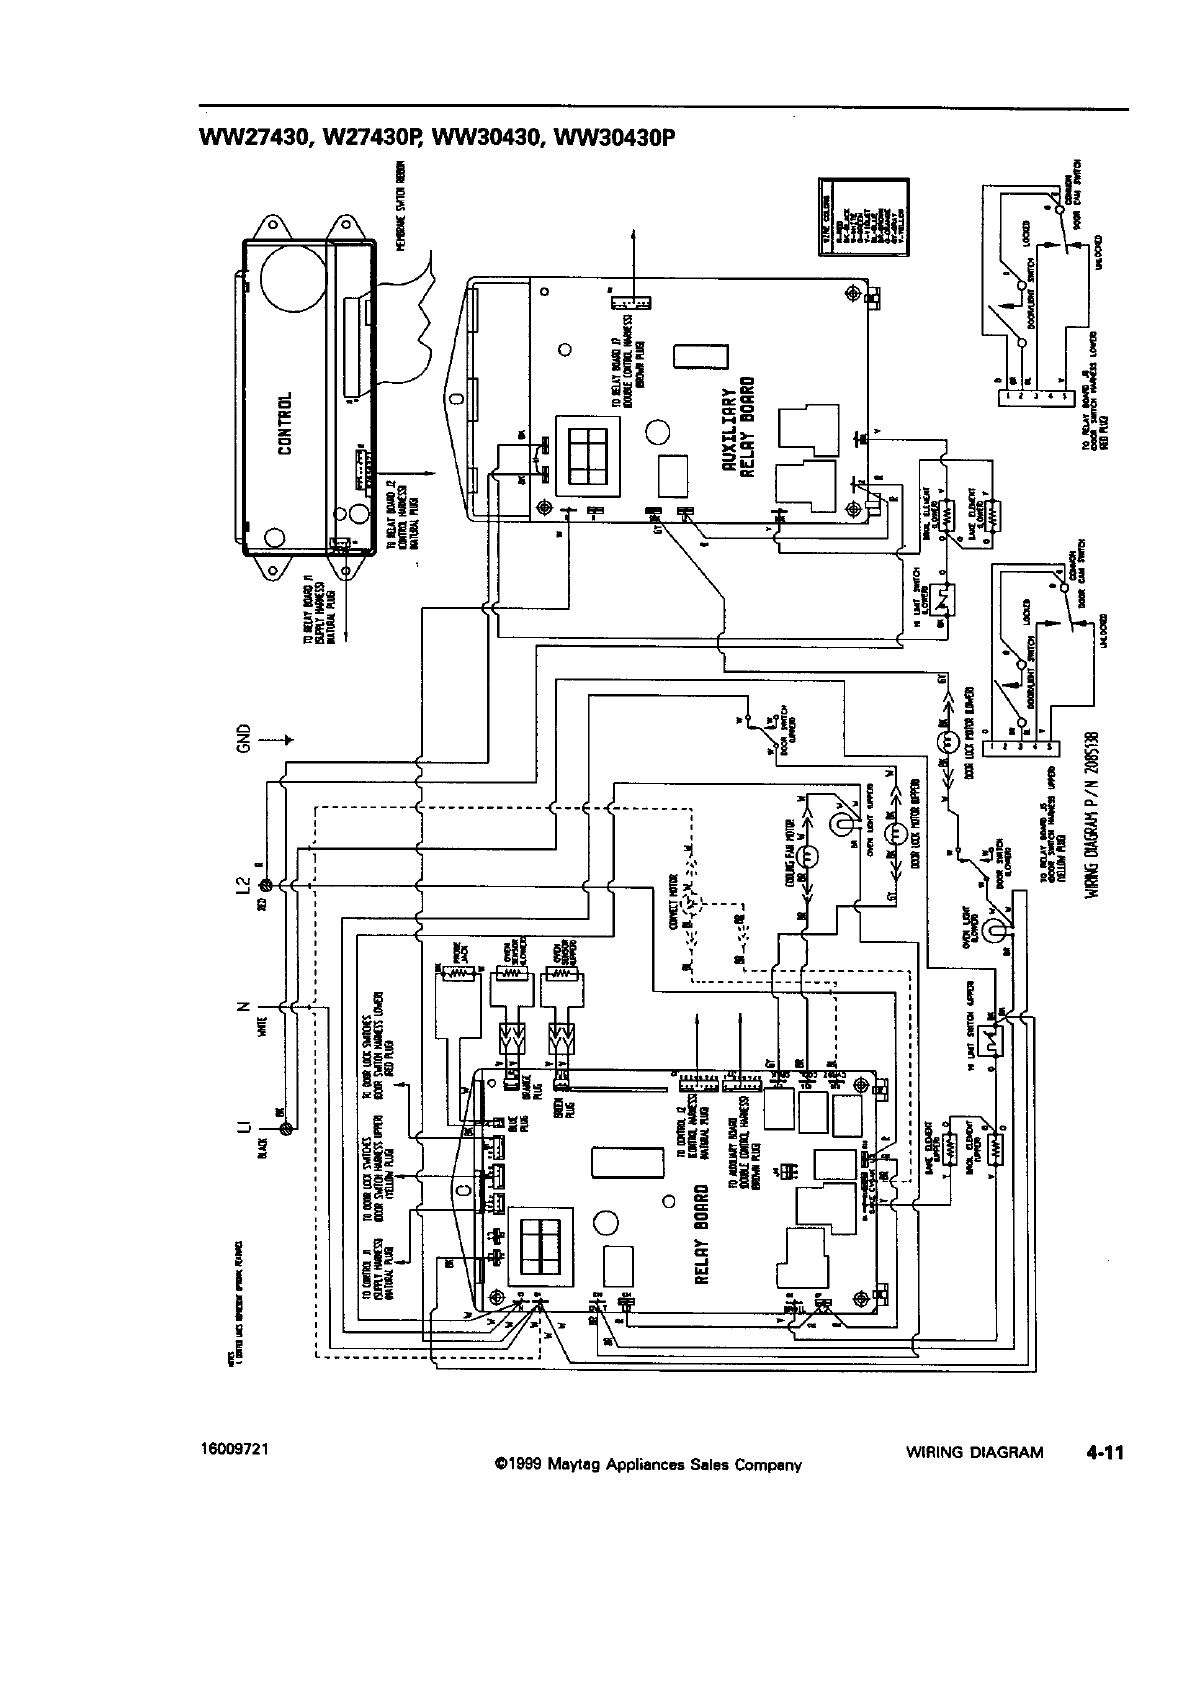 52b2f415 78fa 4259 88c0 be210120d02a bg2b page 43 of jenn air oven ww30430p user guide manualsonline com Basic Electrical Wiring Diagrams at edmiracle.co